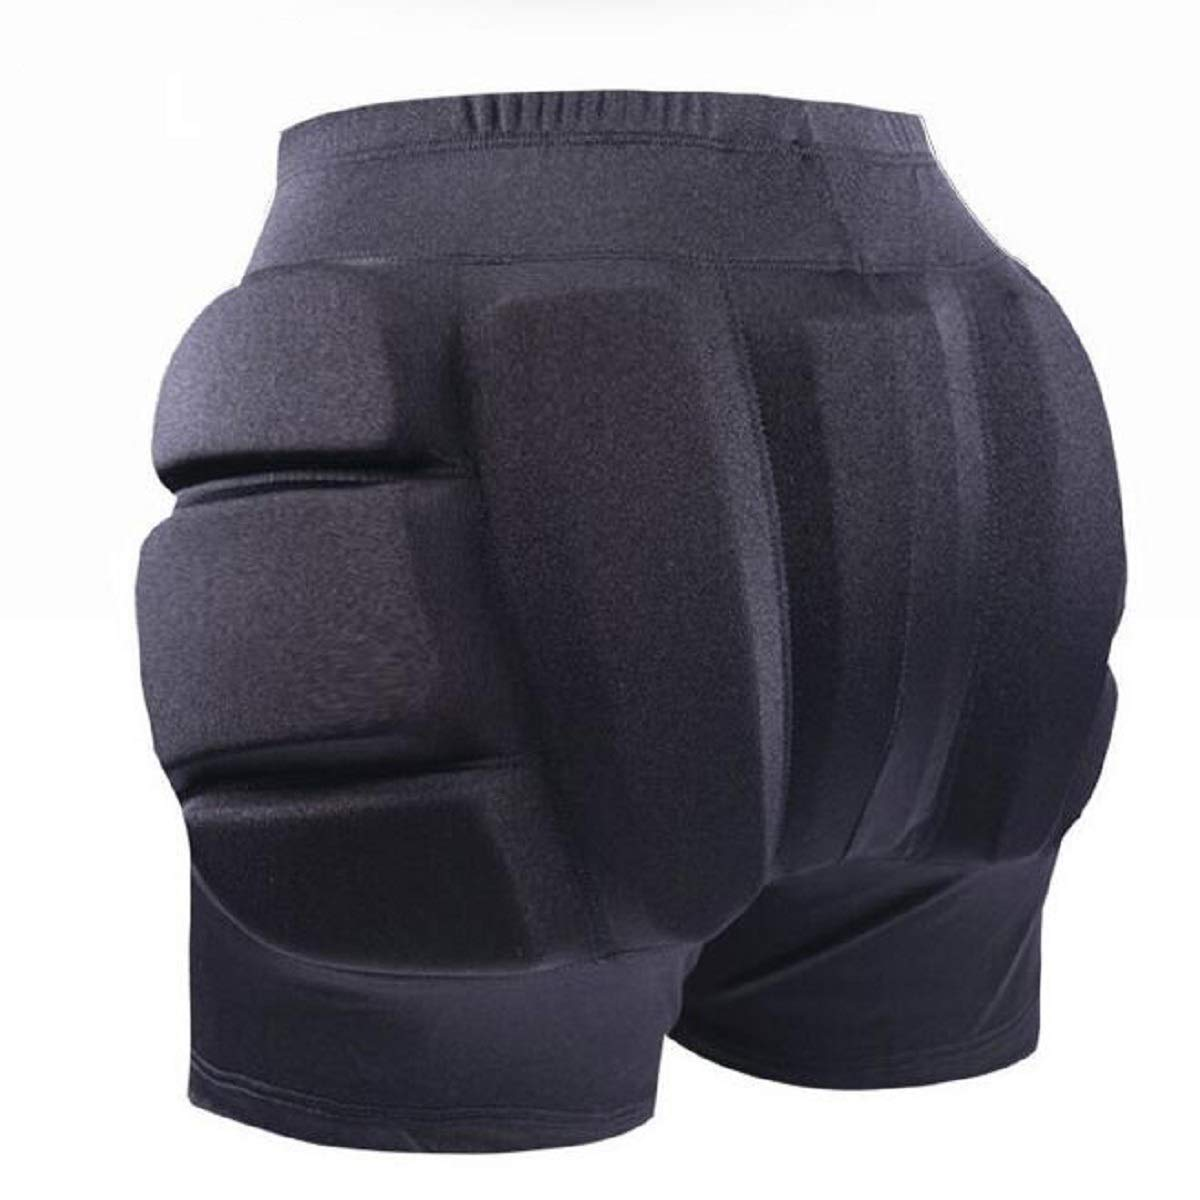 LIUHUO Hip Pad Protector Padded Shorts for Guard Ski Roller Skating Snow Crash Butt Pads for Hips Tailbone Butt